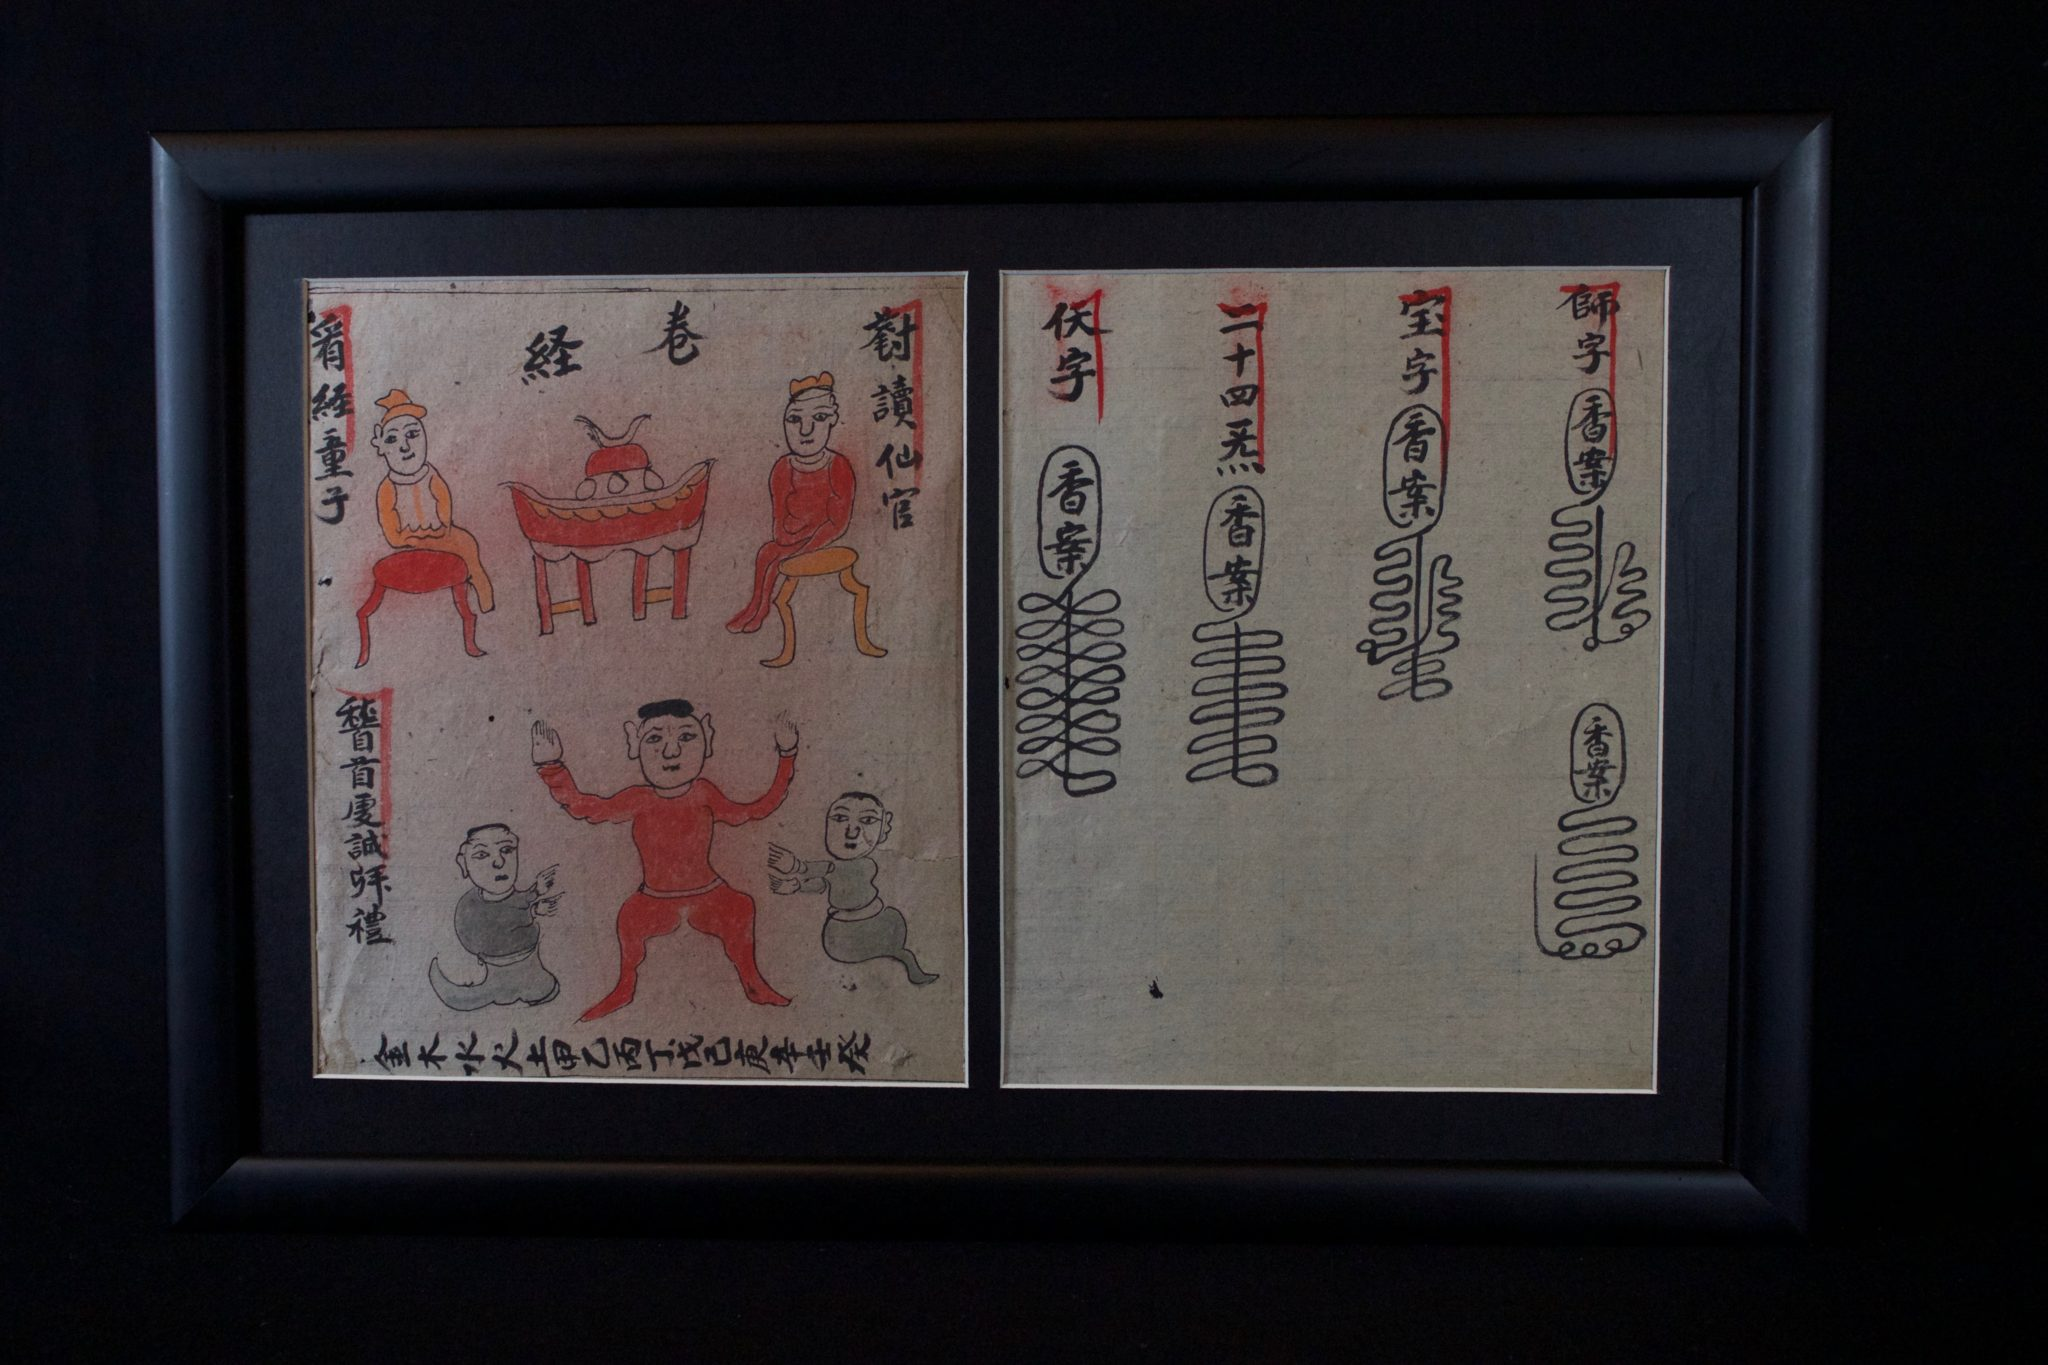 """Pages from a Shamanic Book, Vietnam, Cao Lan people, Mid 20th c, Ink and watercolor handwritten on Mulberry paper, It is a book for making astrological predictions using the East Asian zodiac's twelve animal characters. The text of the book uses images, maps and text to describe in detail, for the learned shaman, how to navigate this complex system of looking into the future. 12"""" x 17 ¾"""" x ¾"""", $260."""